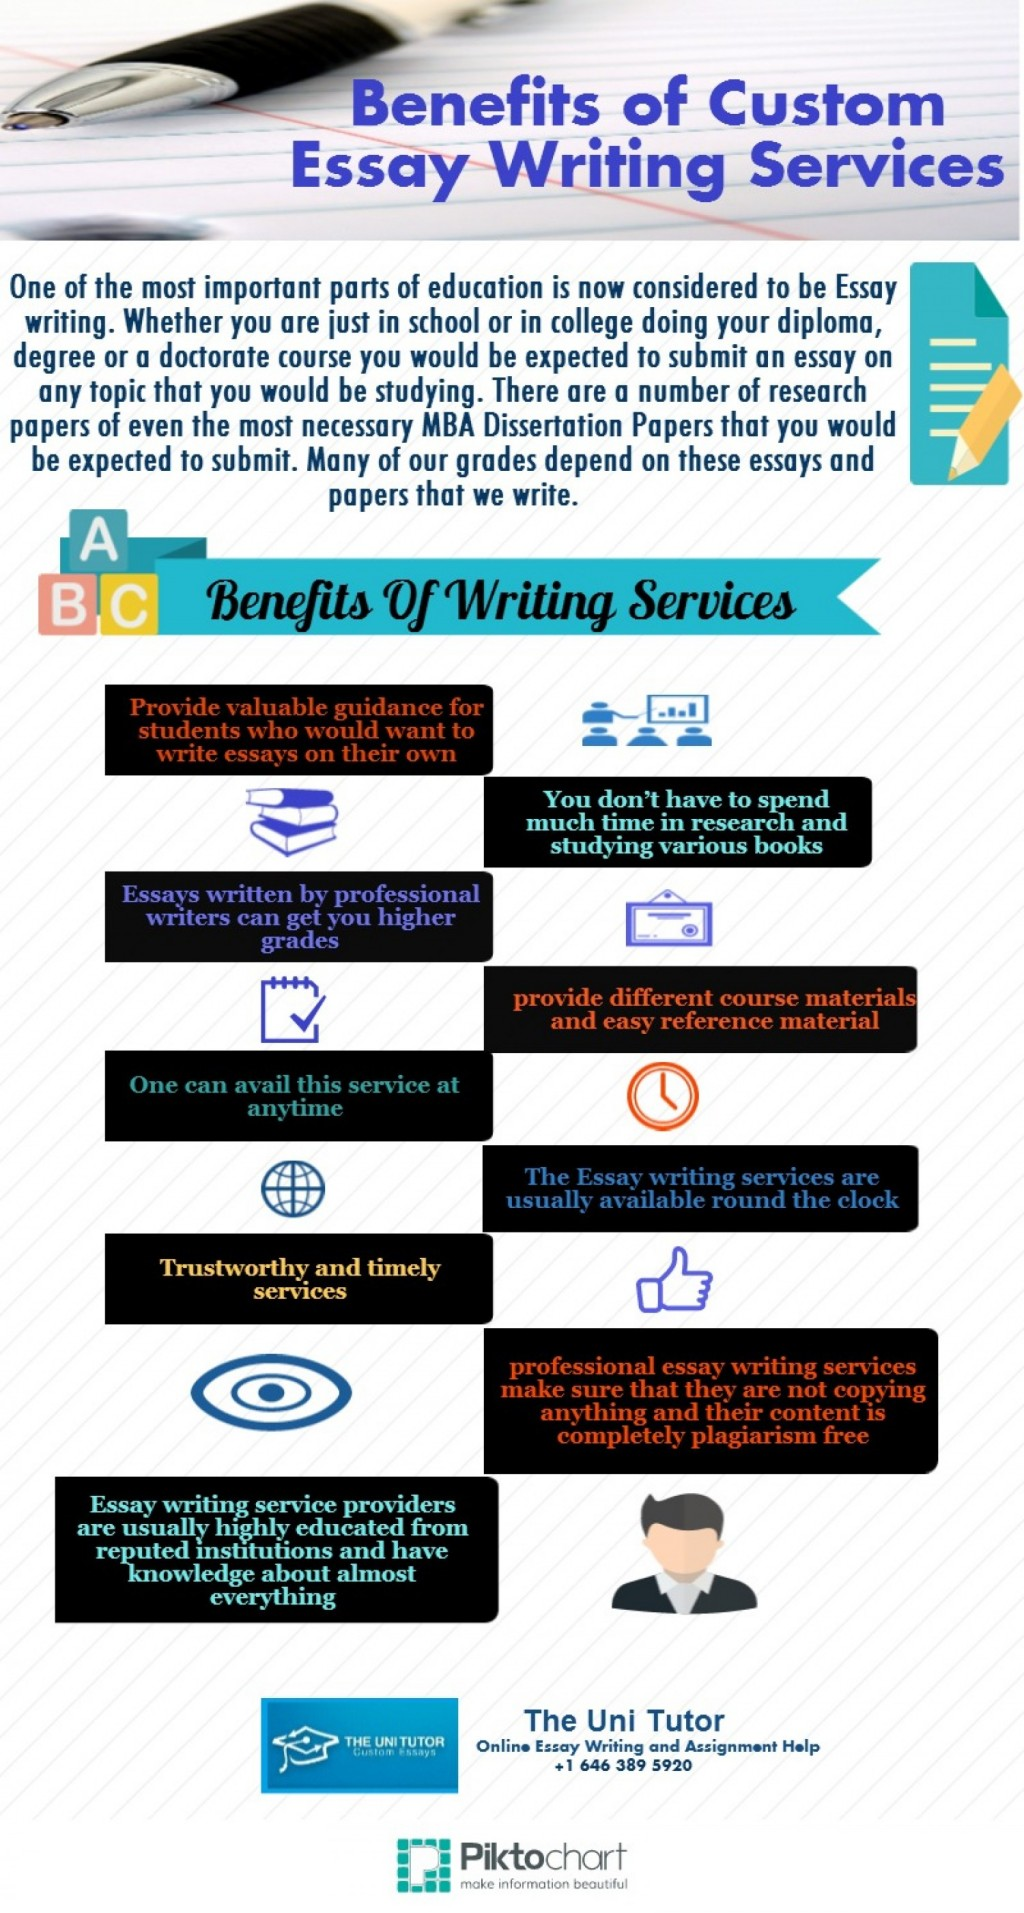 012 Essay Example Benefits Of Custom Writings 539ee0a2052b6 W1500 Beautiful Service Are Writing Services Legal Cheap Canada Reviews Large